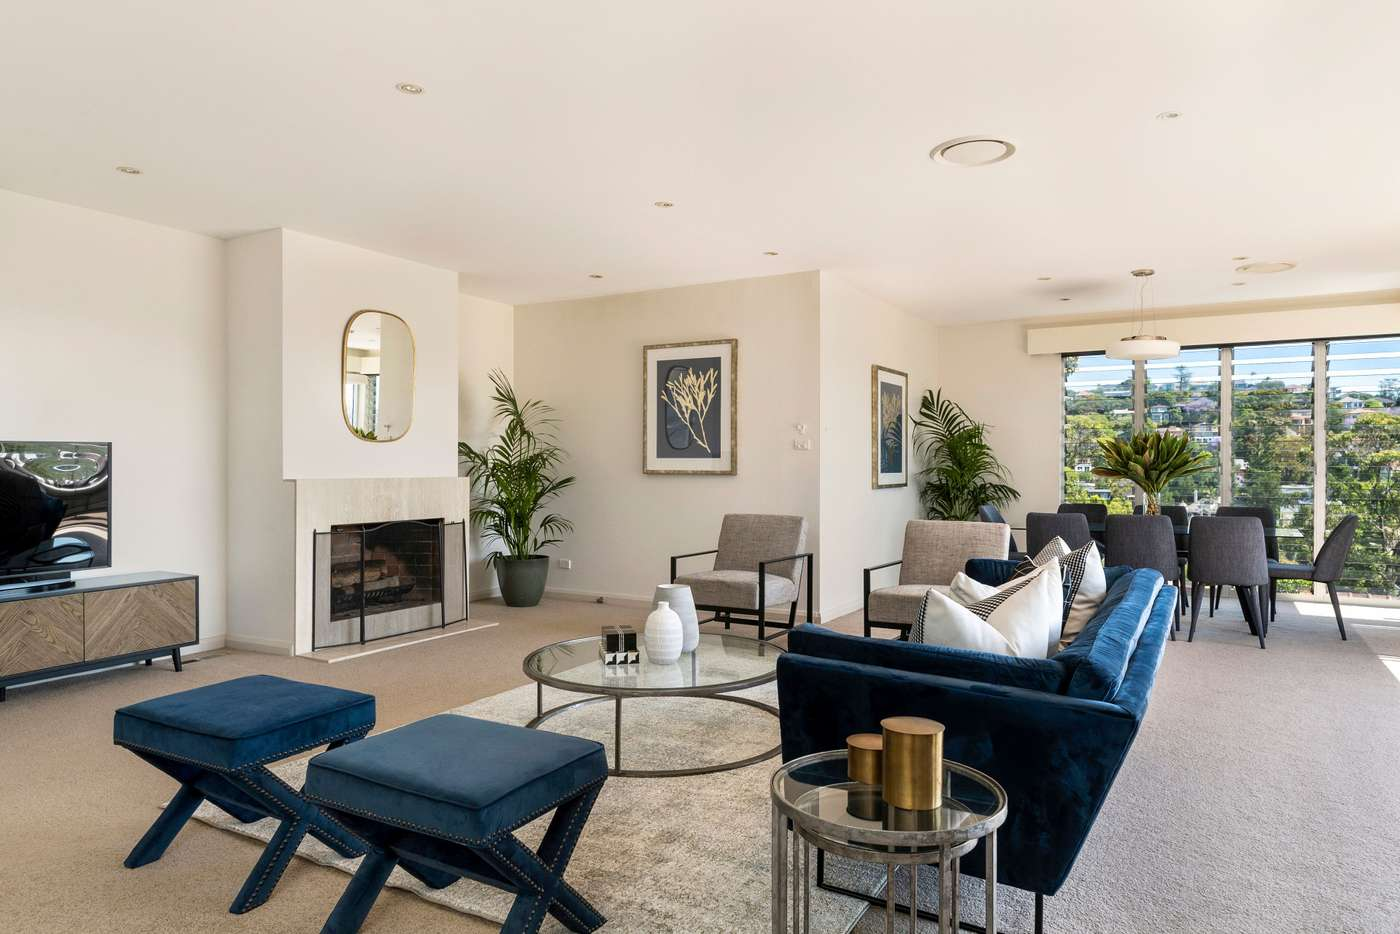 Fifth view of Homely house listing, 8 Koowong Avenue, Mosman NSW 2088